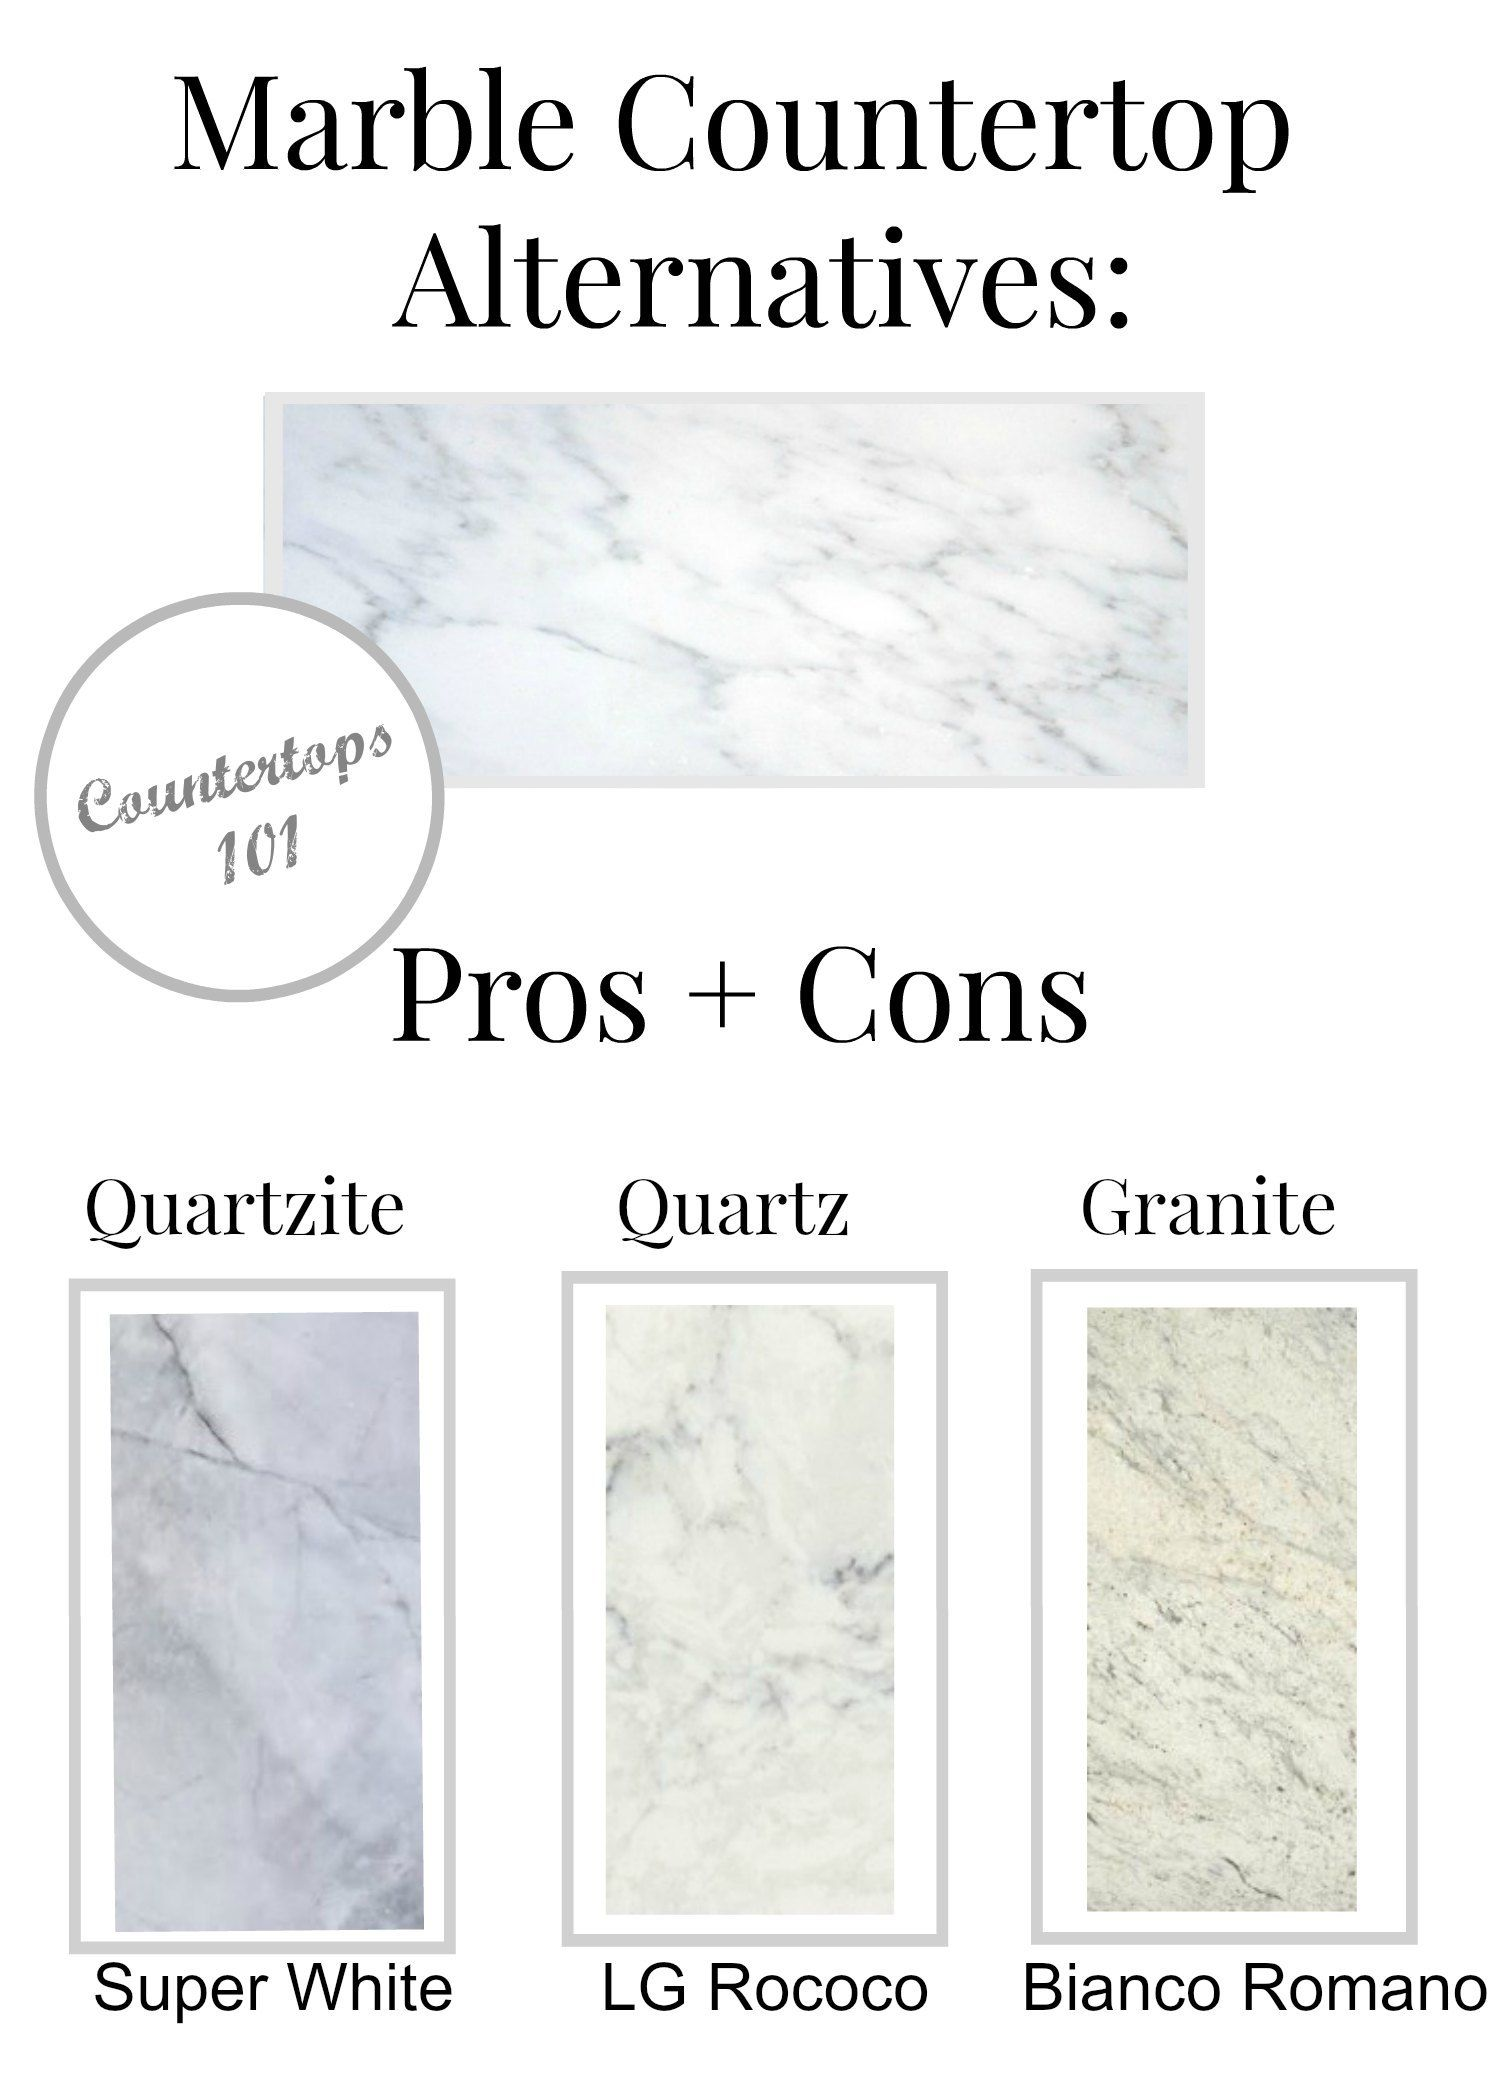 Marble Countertop Alternatives Pros And Cons From Quartzite , Quartz, And  Granite.